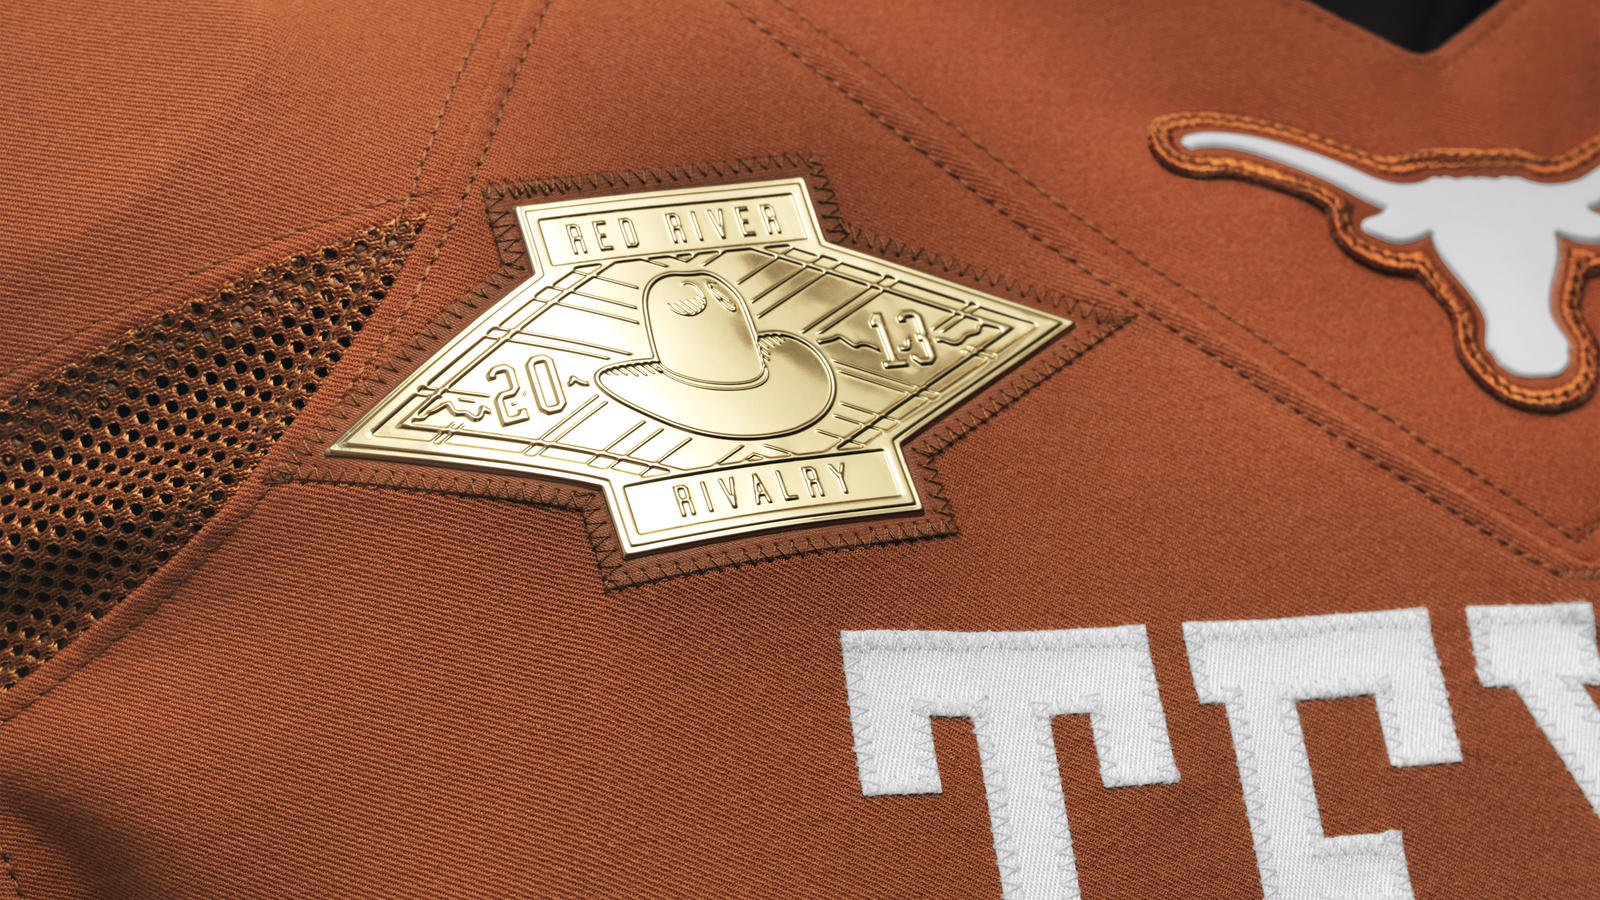 Ncaa Fb13 Uniforms Texas Rivalry 0000